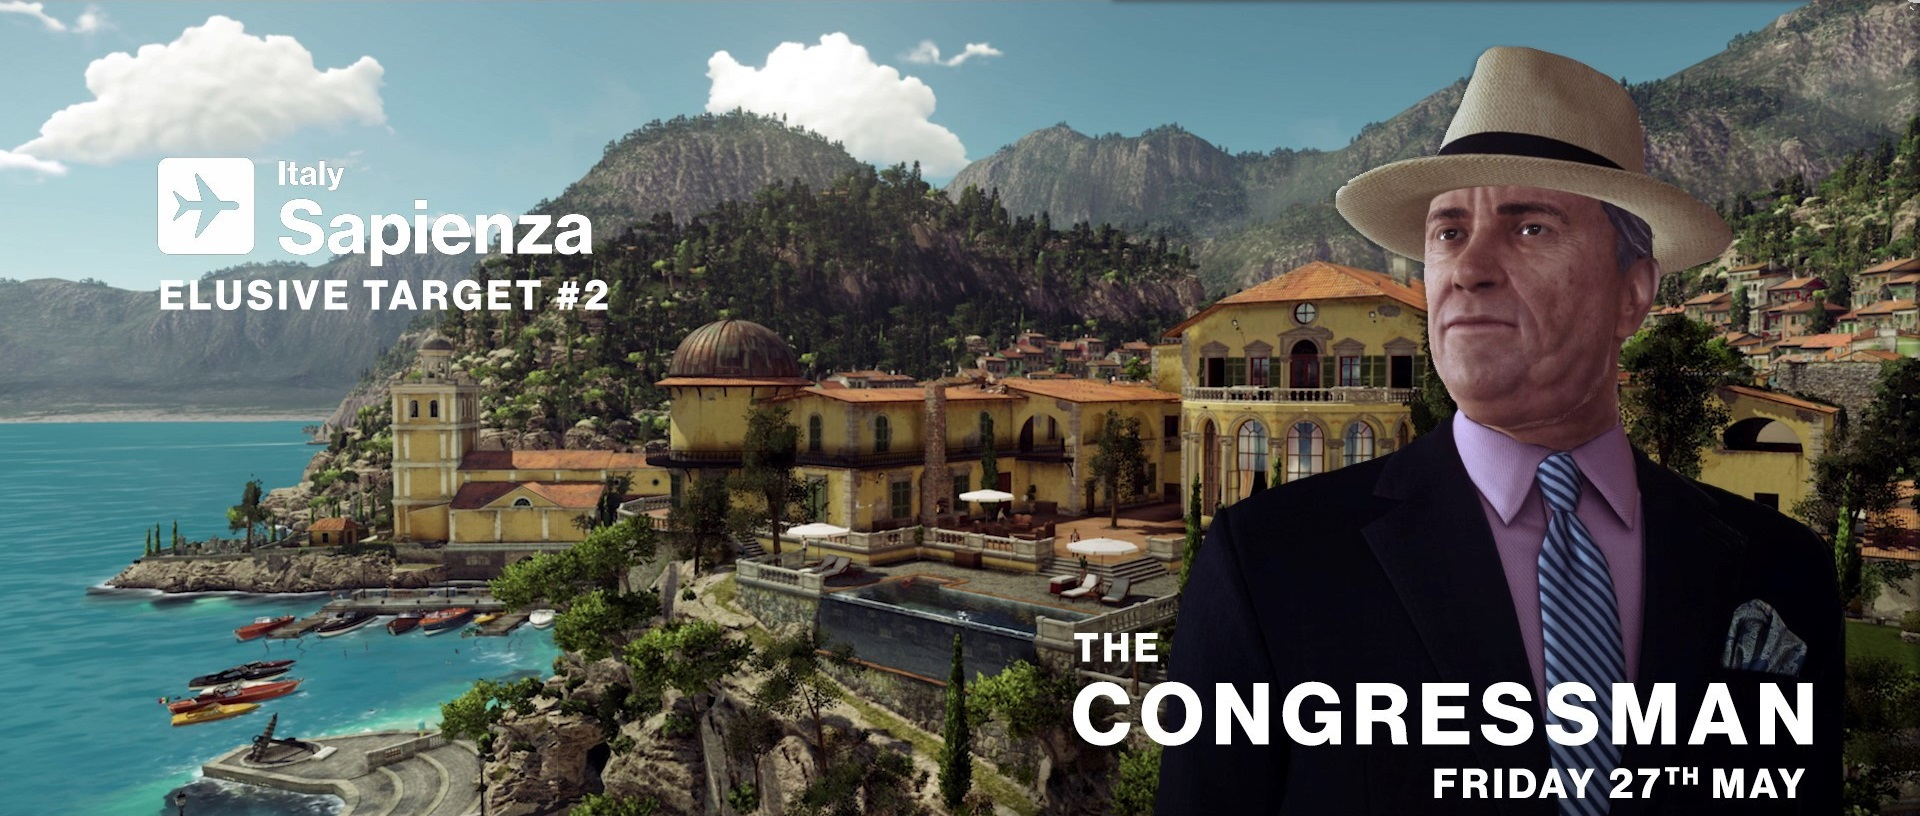 Hitman: Episode 3 coming release dateGame playing info